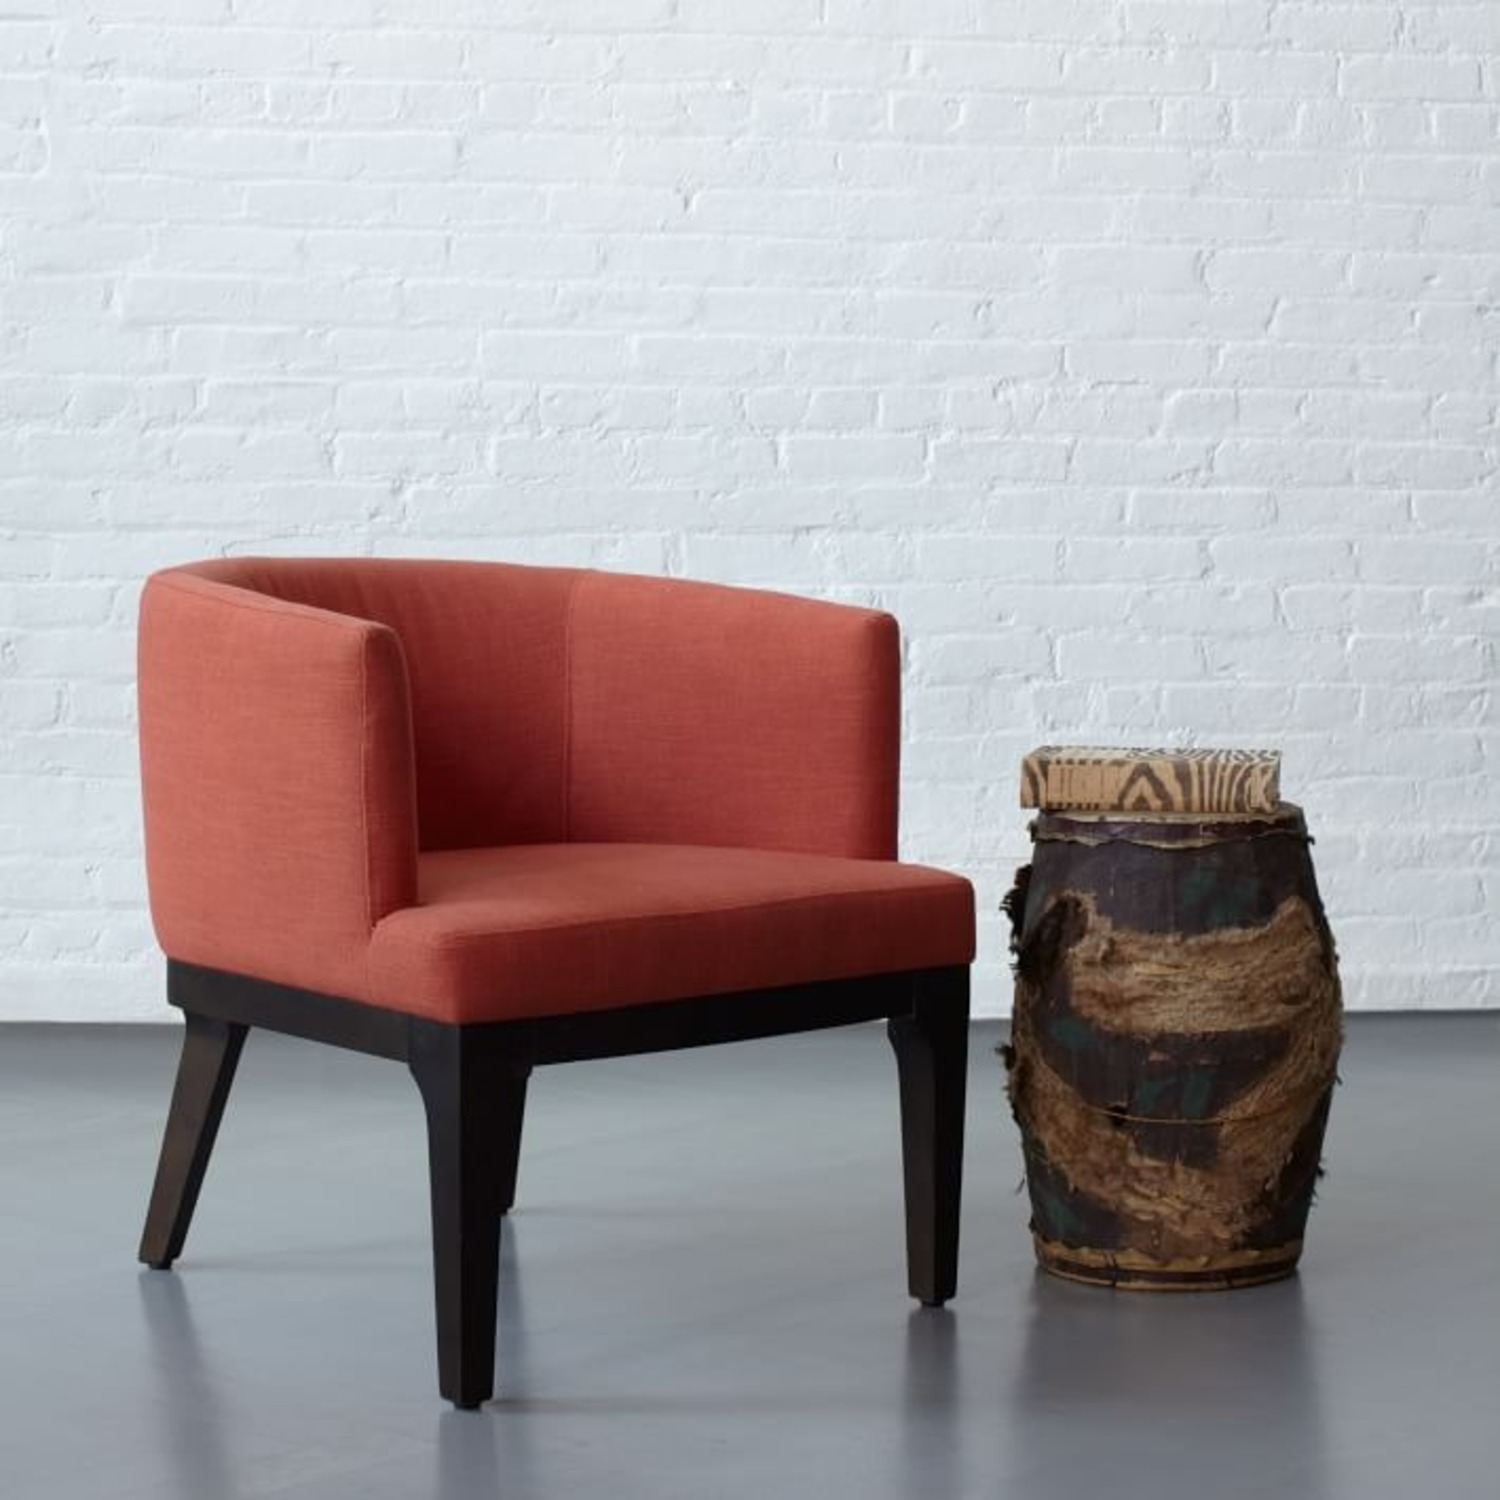 West Elm Oliver Chair - image-1